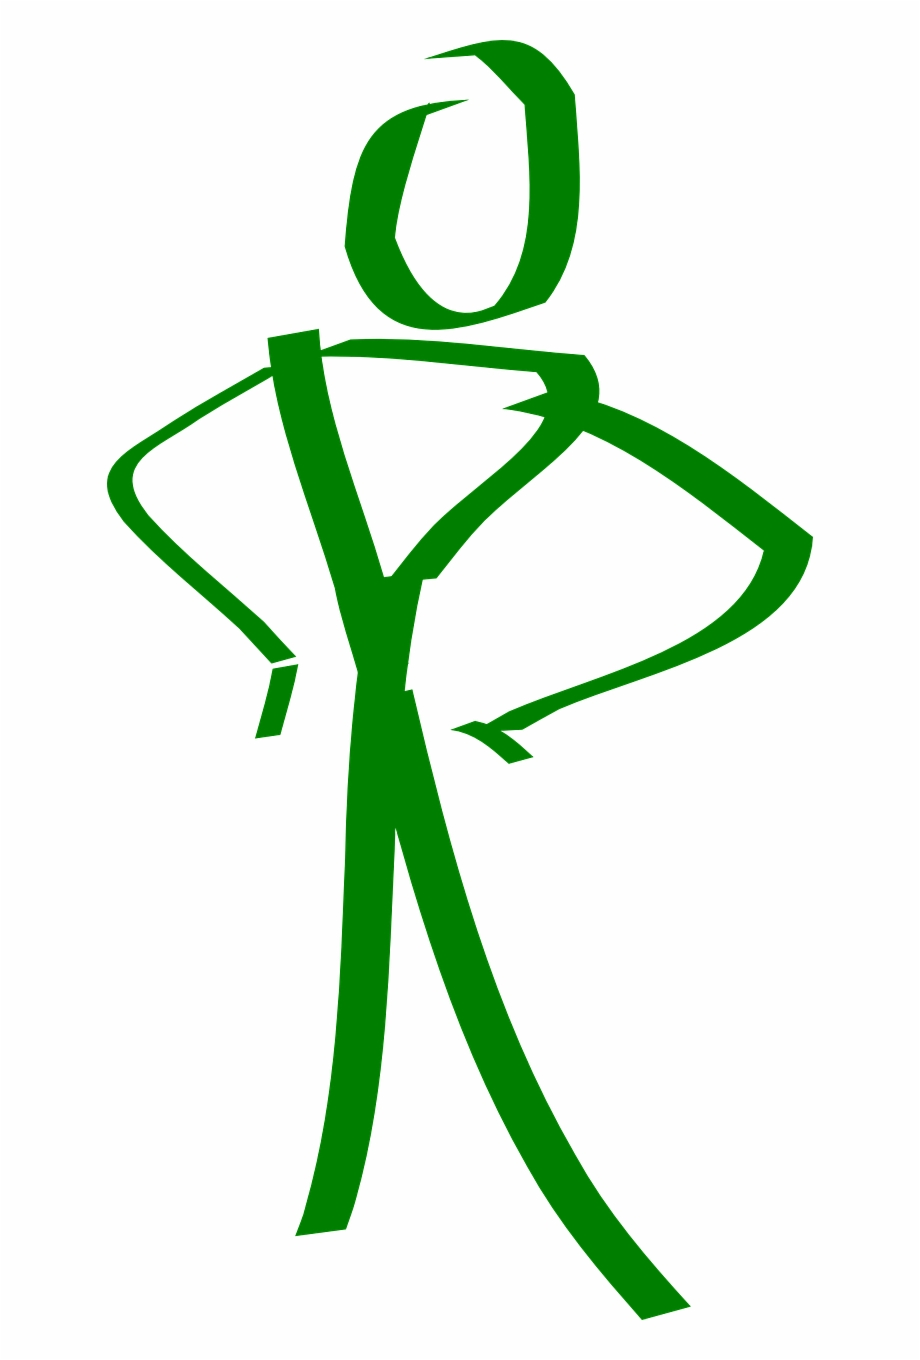 Stick Figure Standing Stick Man Png Image.